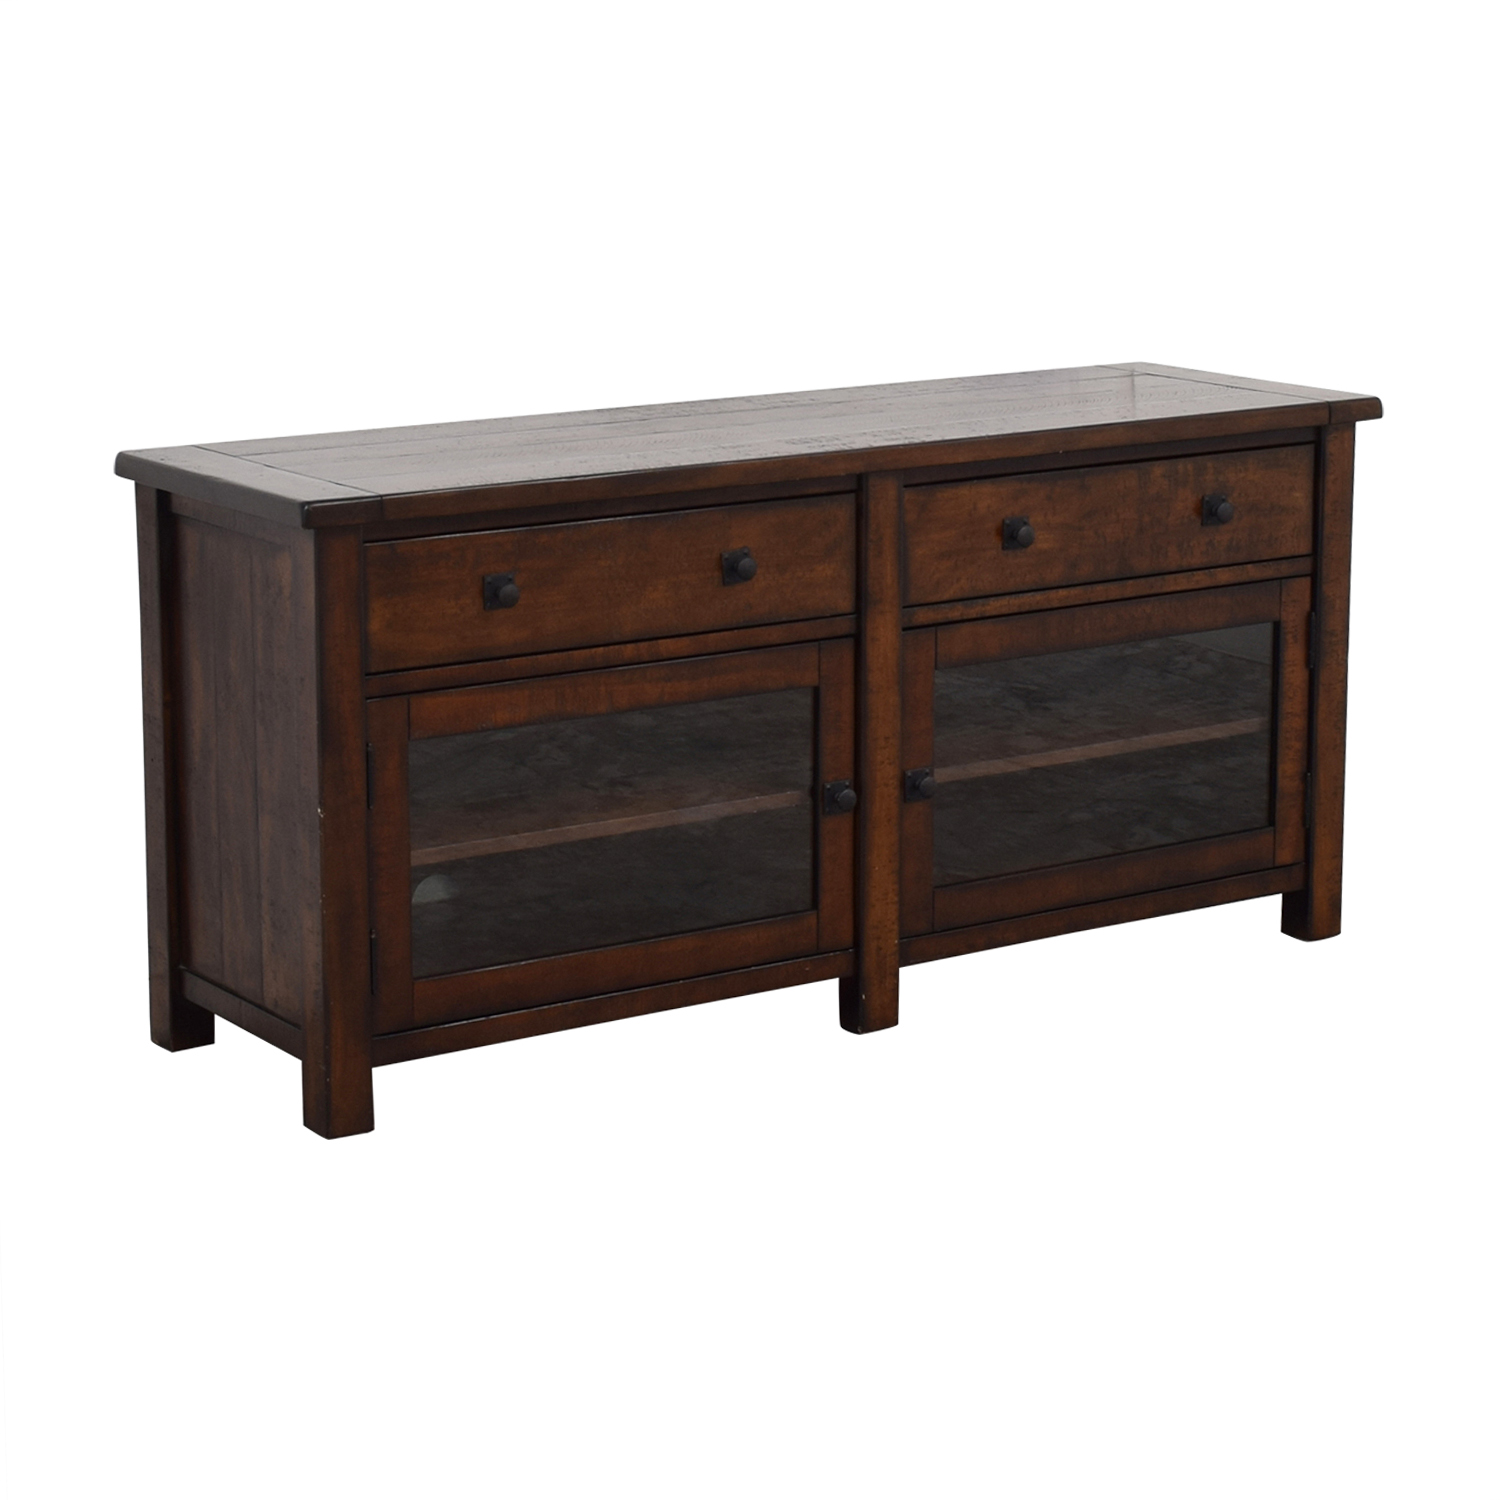 Pottery Barn Benchwright Media Console sale